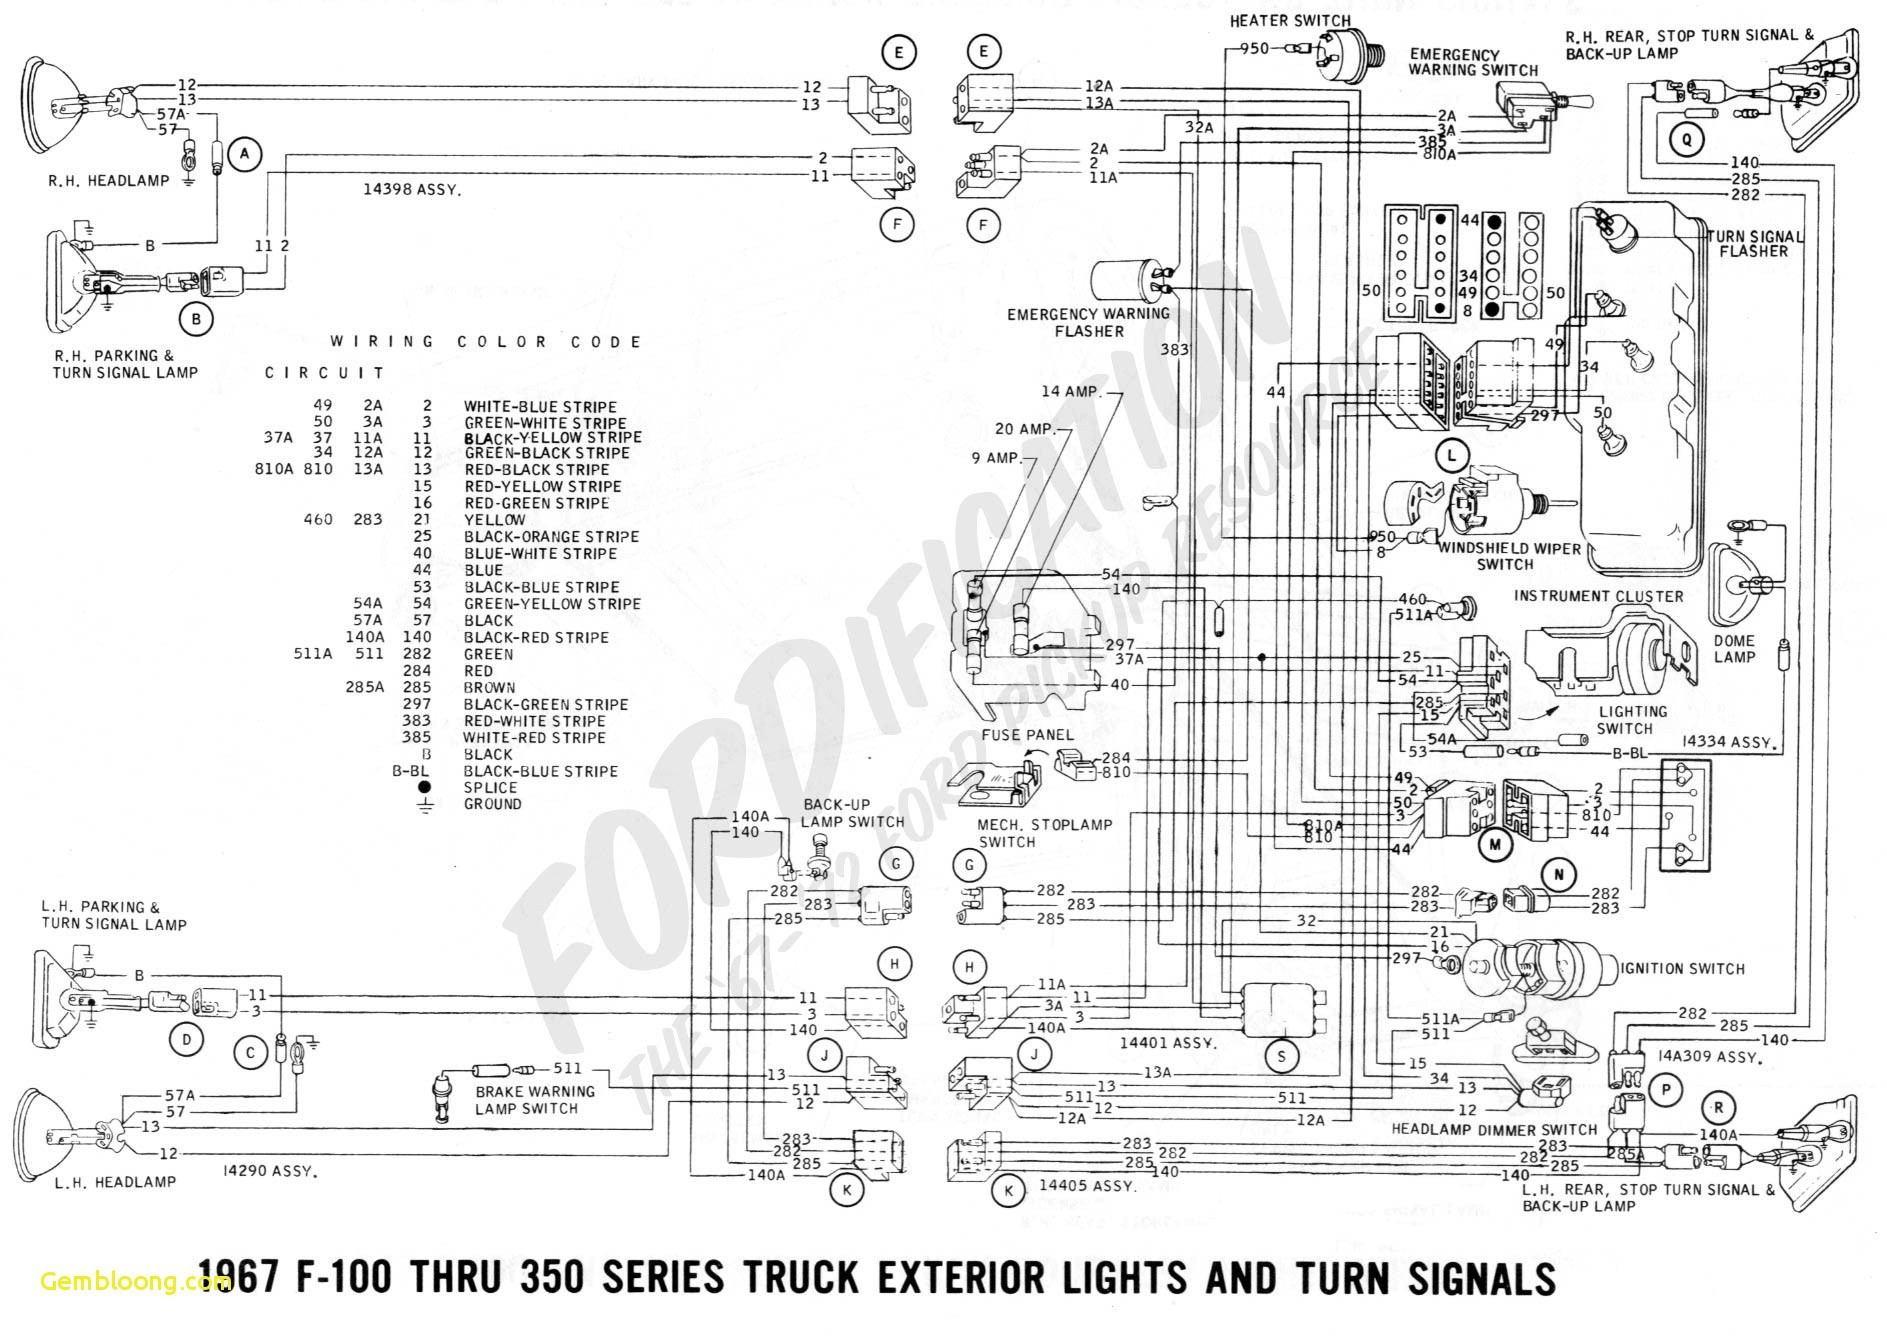 Ford F650 Turn Signal Wire Diagrams New